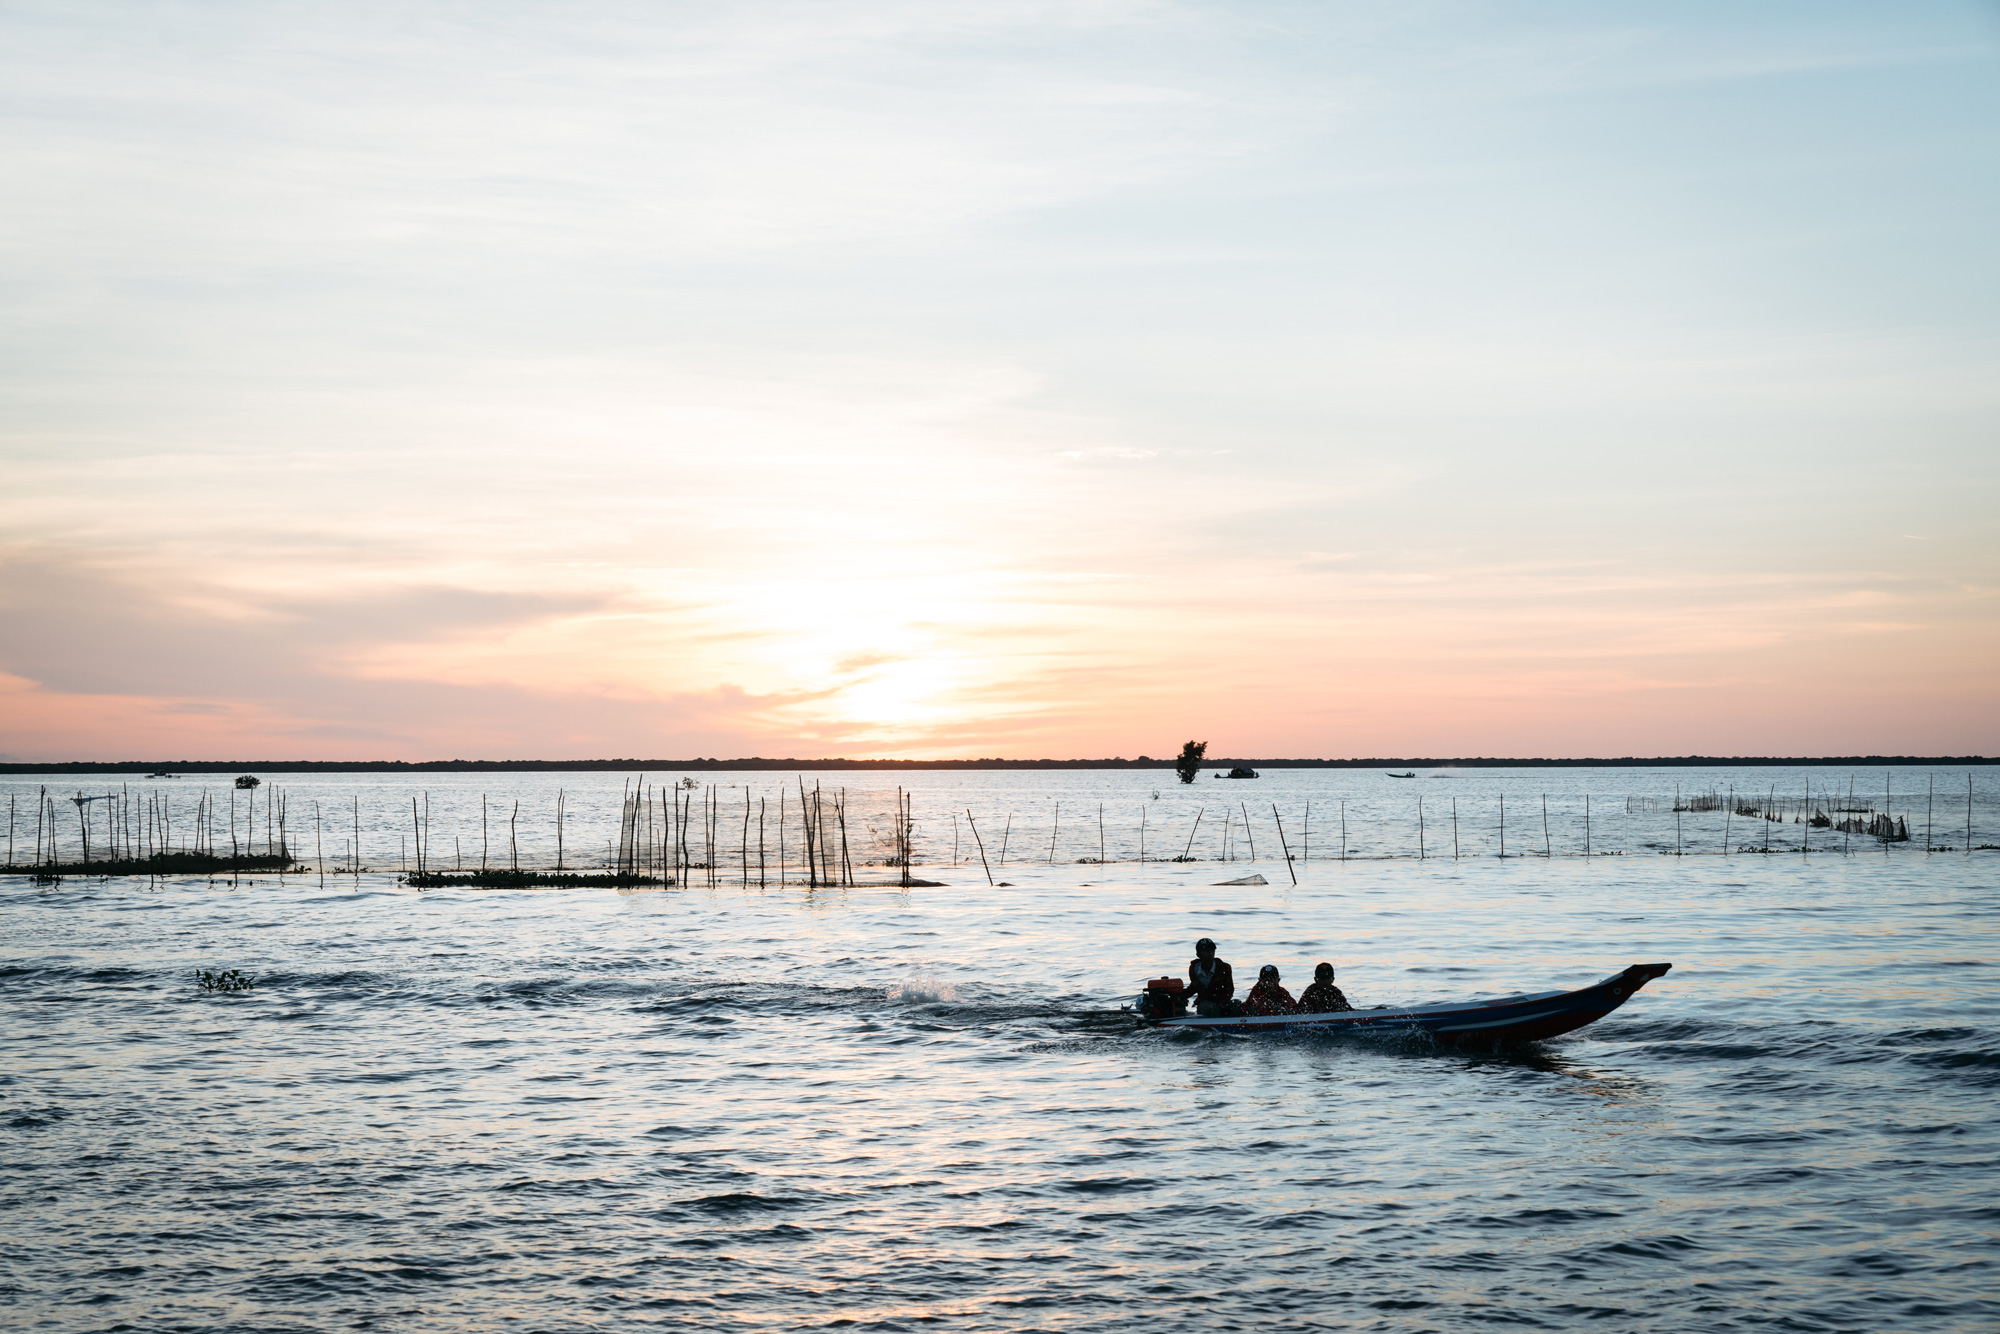 Sunset on Tonle Sap Lake